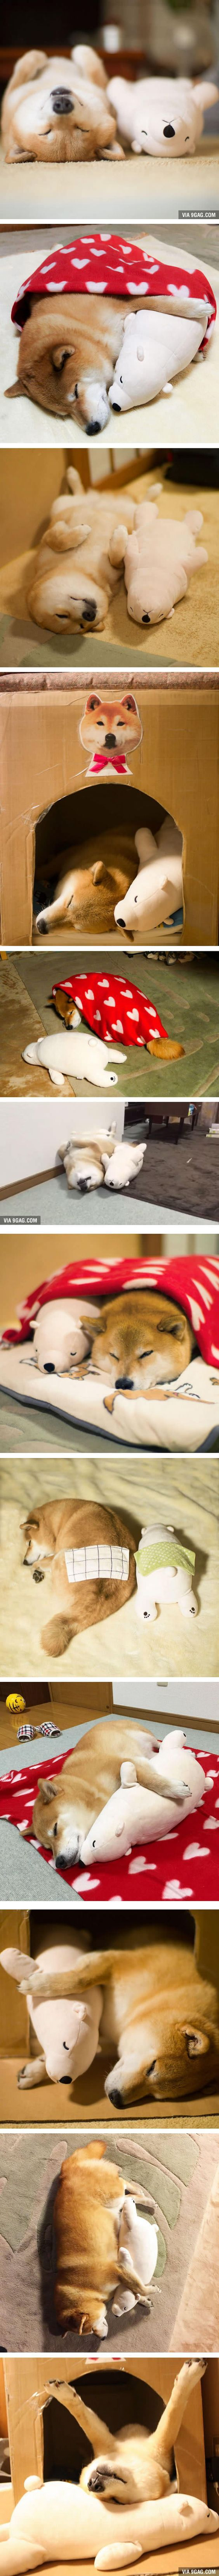 Shiba Inu Maru Loves To Sleep With His Little Stuffed Polar Bear Toy: